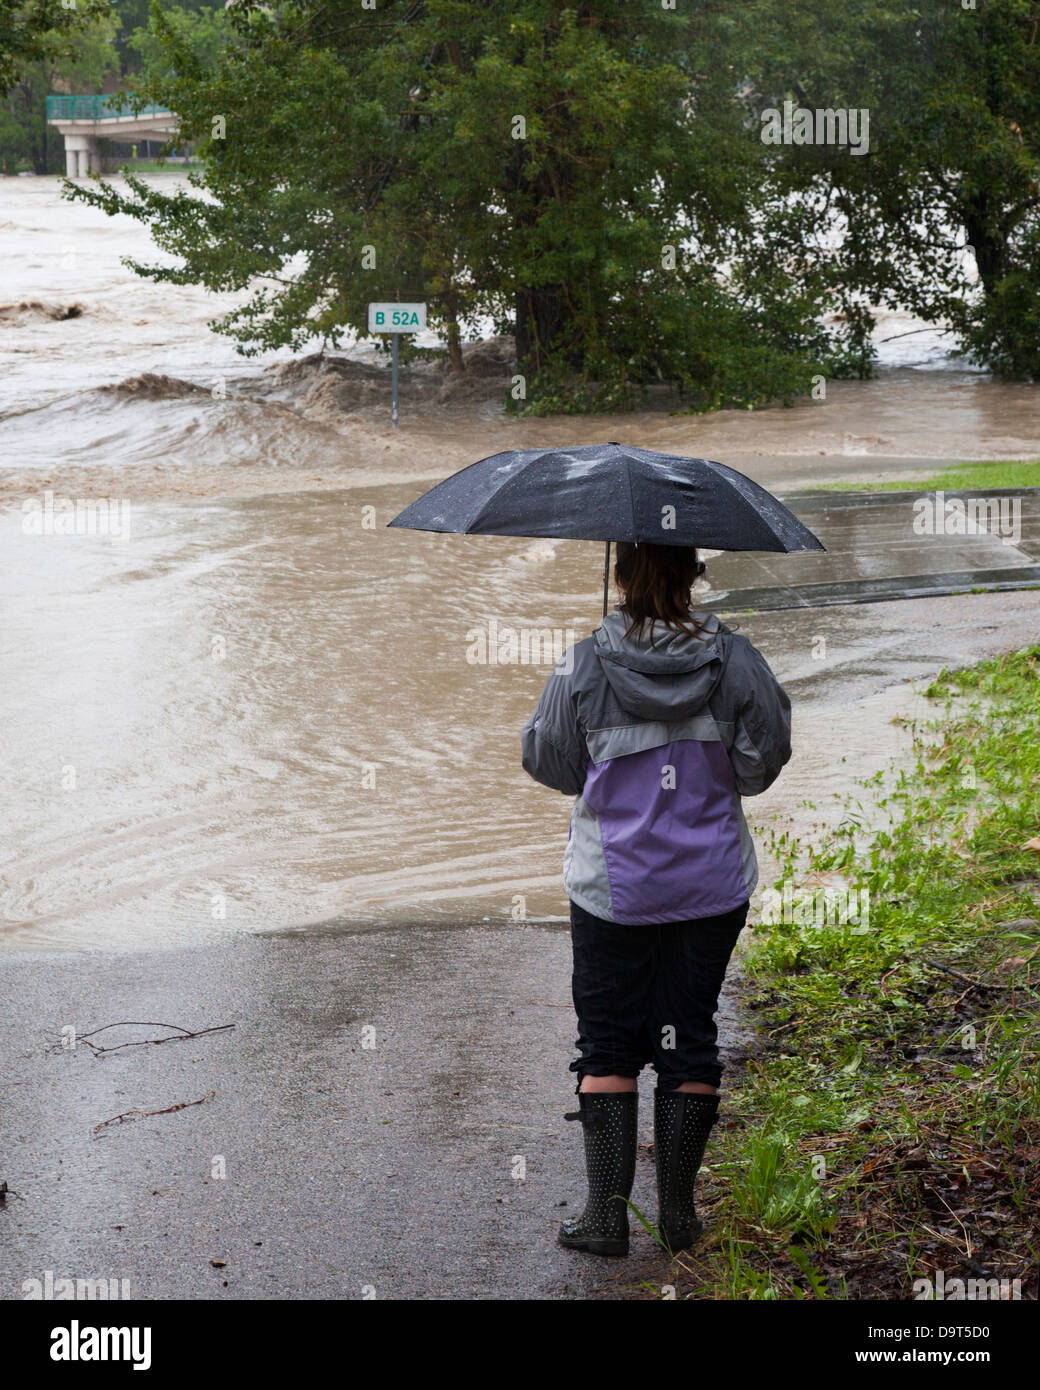 Woman holding umbrella watching the Bow River breach the bank and flood the pedestrian path in downtown Calgary - Stock Image